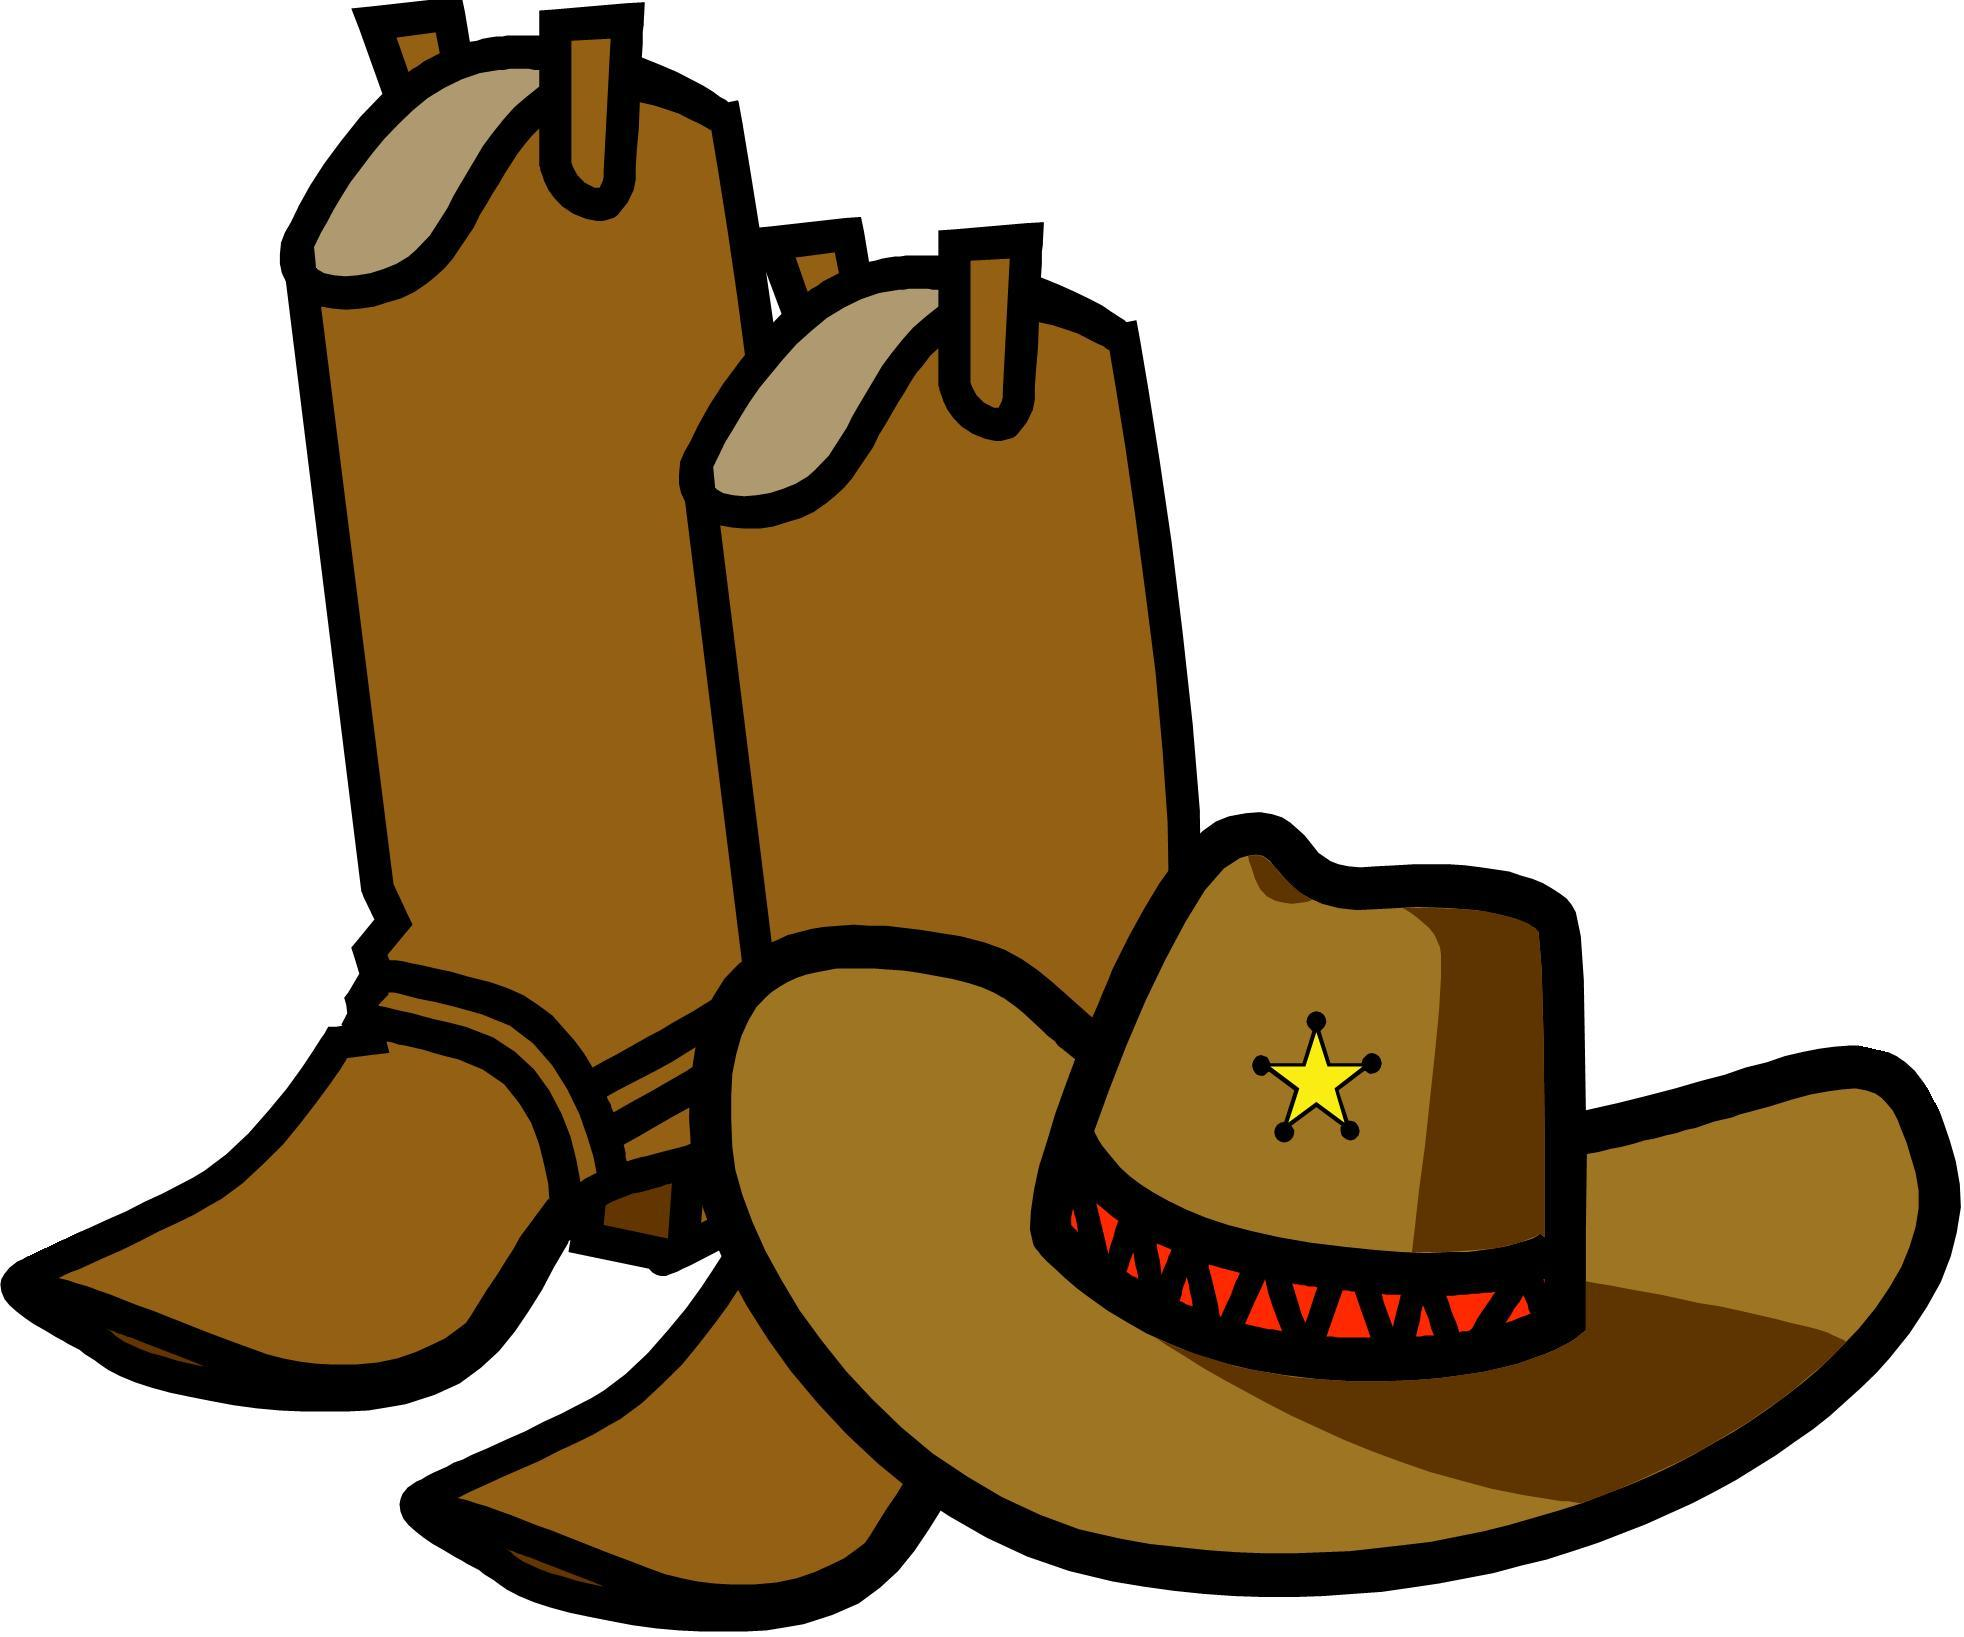 Western rodeo clipart 6 » Clipart Portal.